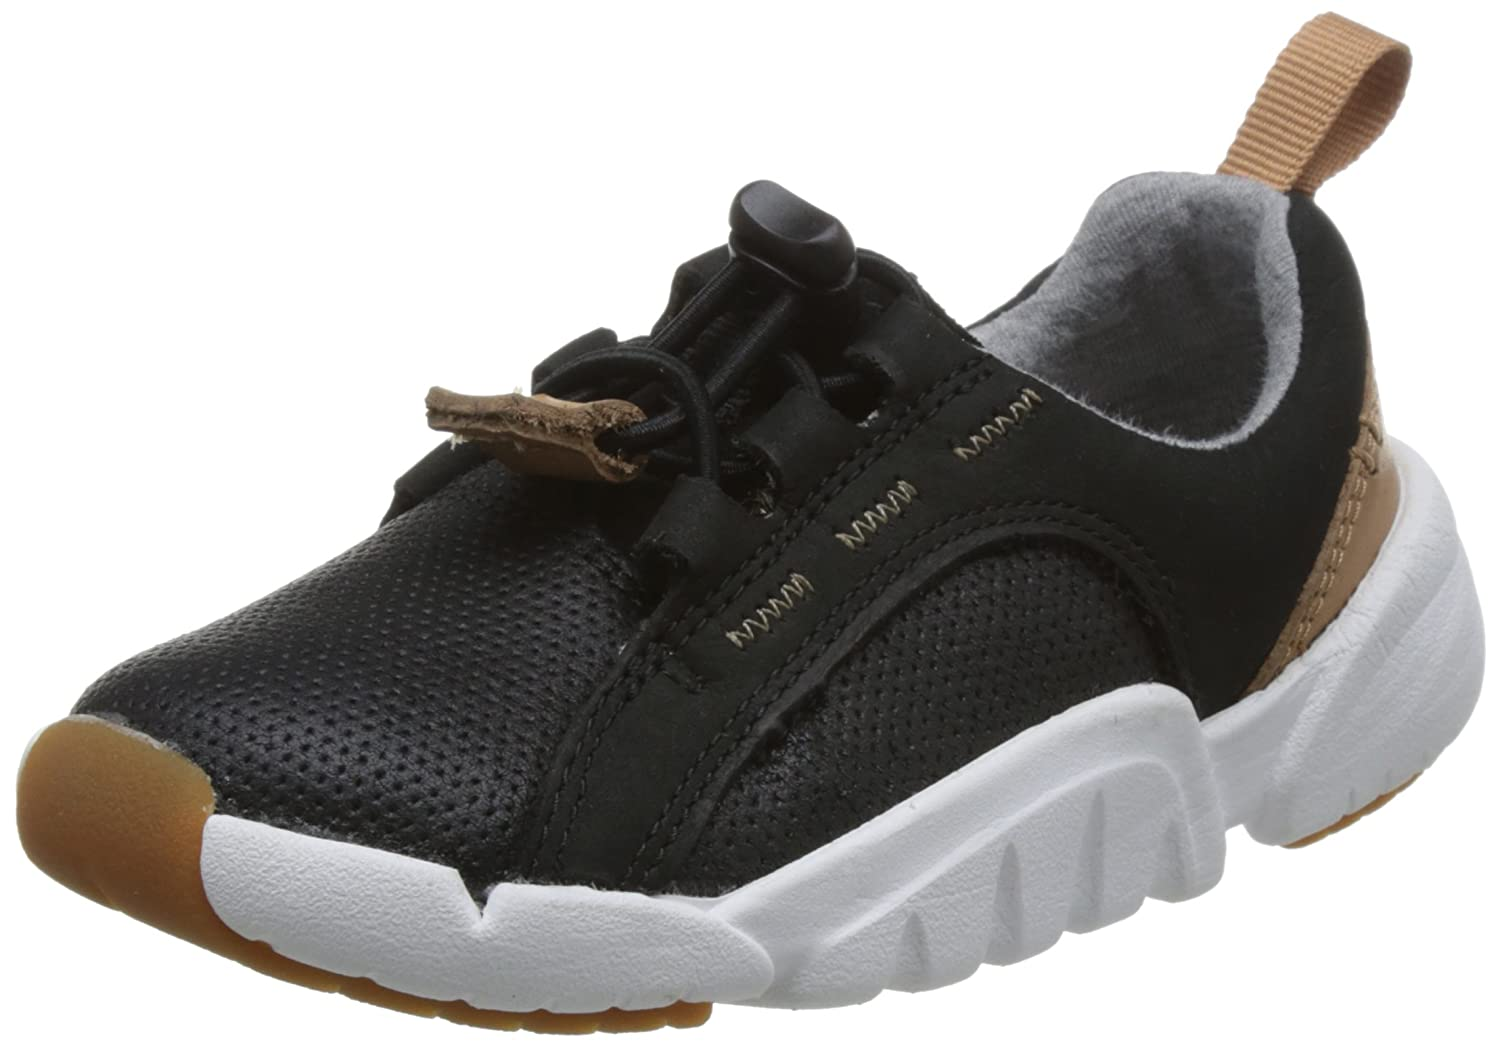 Clarks Chaussures 26133207 TRI Weave